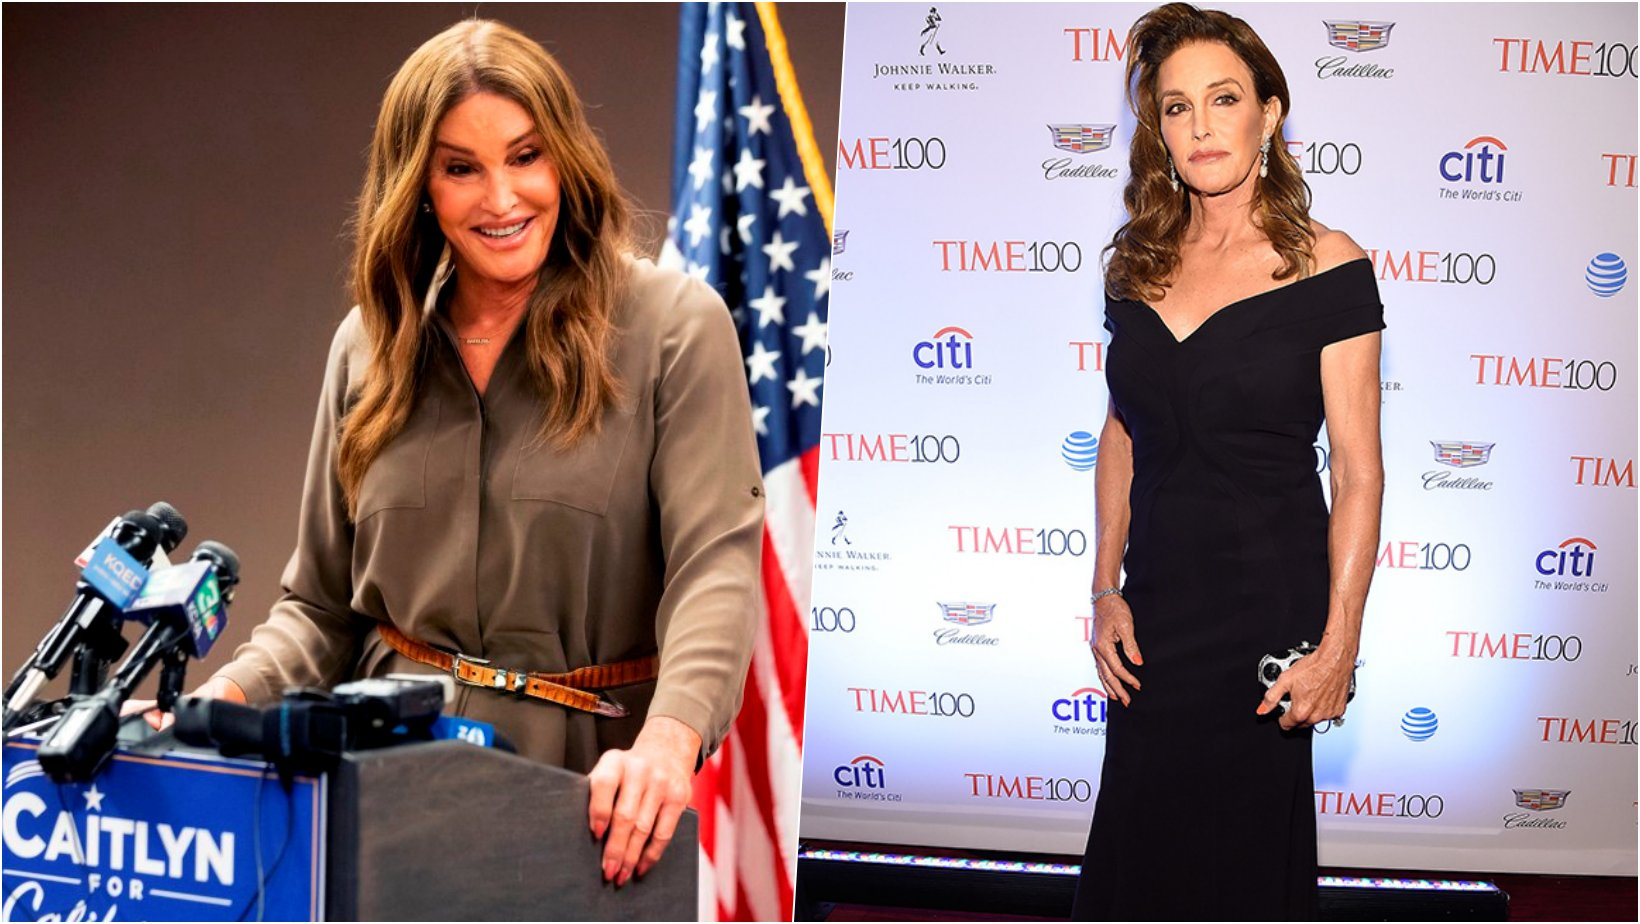 """6 facebook cover 9.png?resize=1200,630 - Caitlyn Jenner Harassed By Transphobic Troll, Calling The Aspiring Governor """"Bruce"""" & """"Sick Freak"""""""